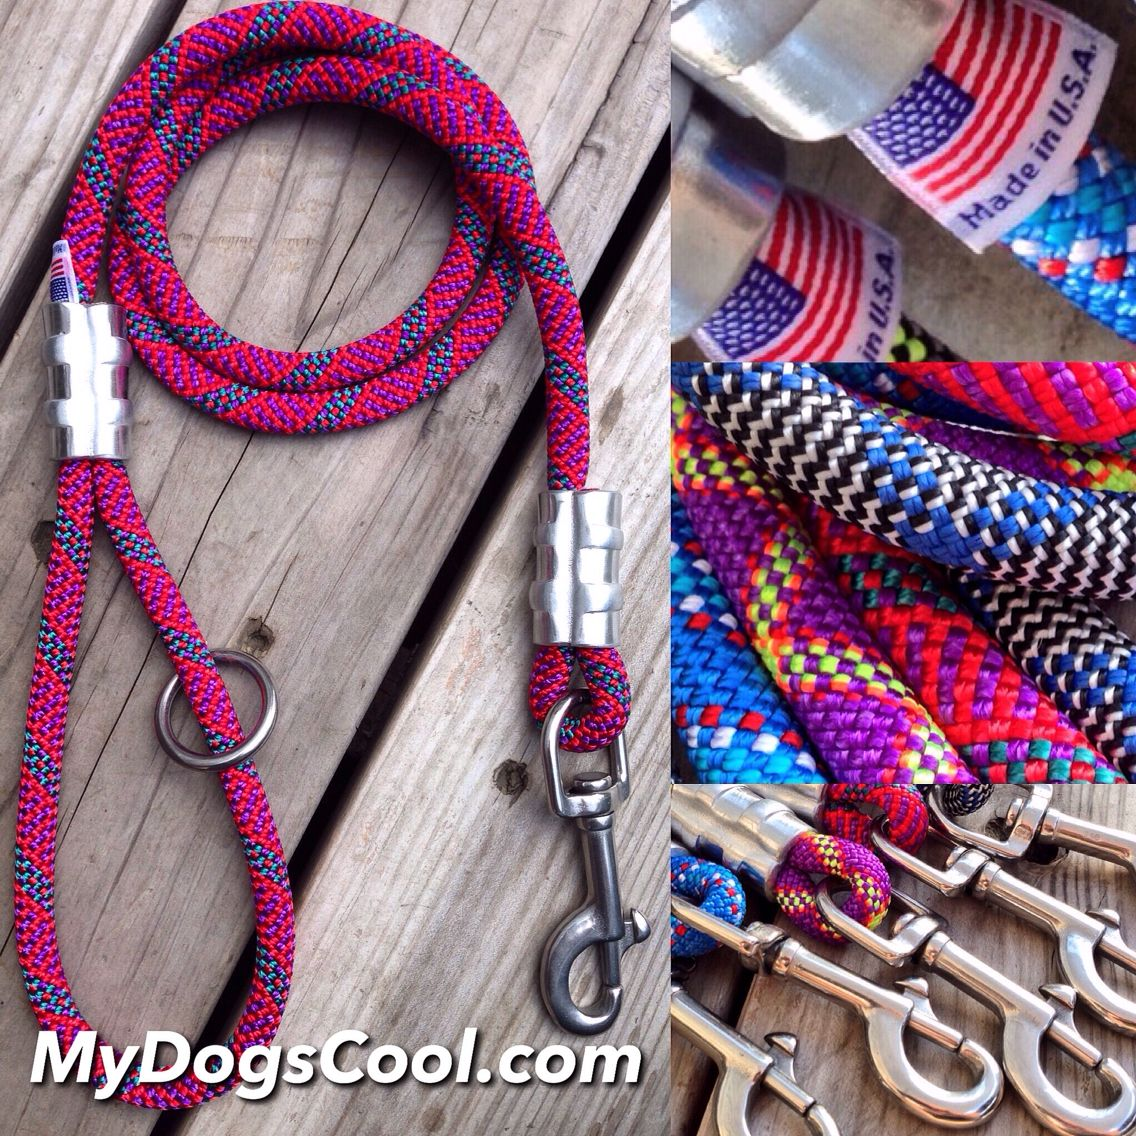 custom dog leashes built with the best climbing 316